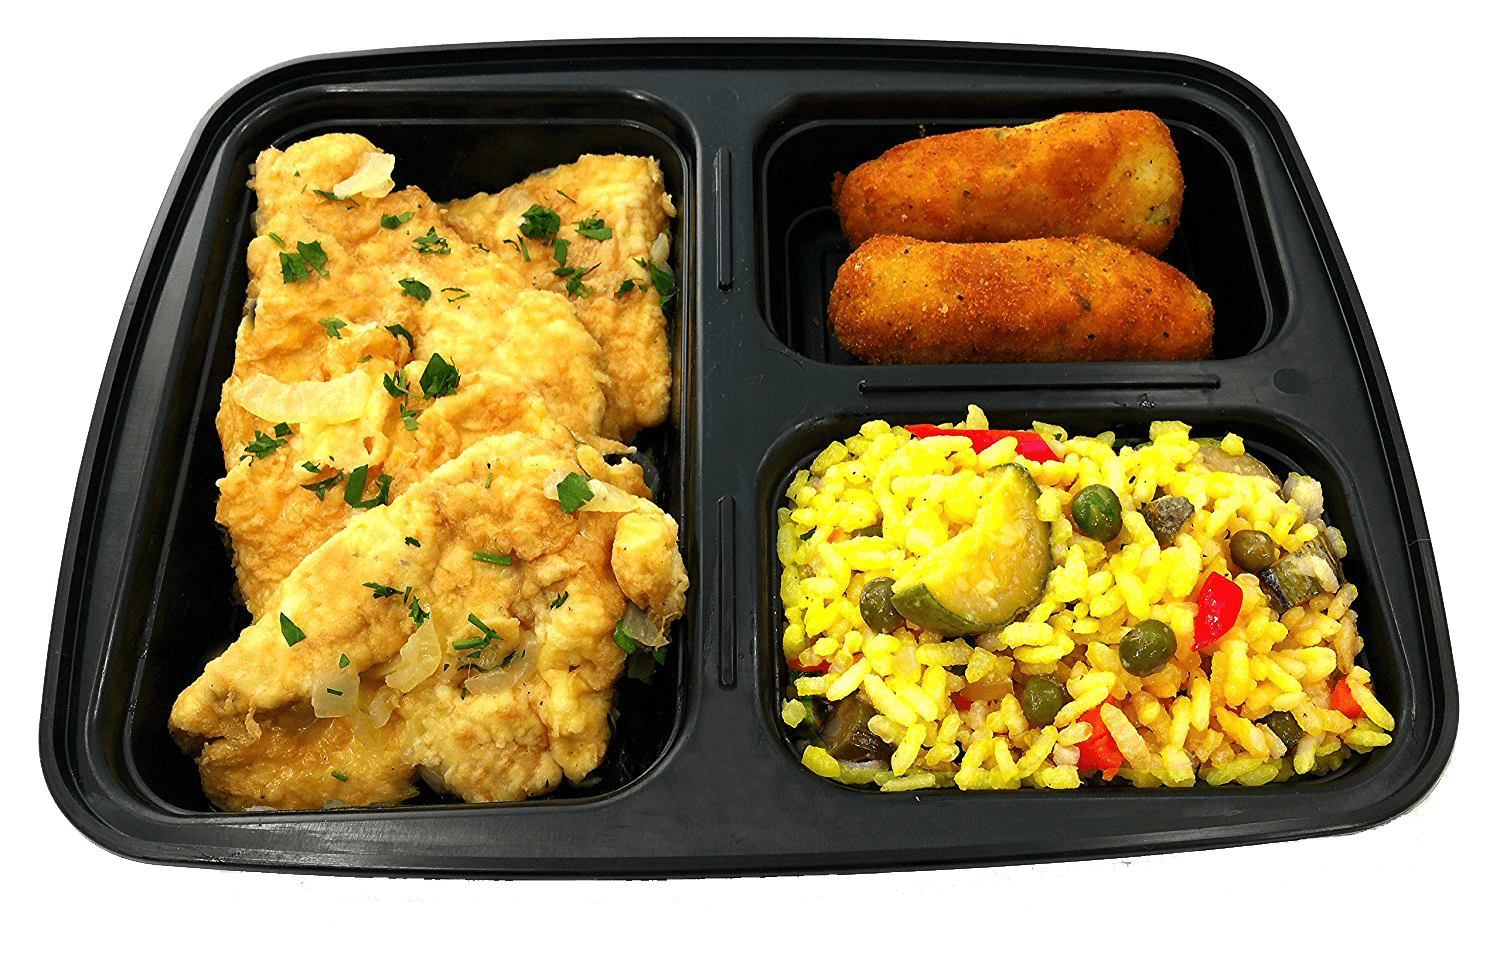 Prepared Food - Fully Cooked Complete Meal Heat And Serve - Chicken Francese, Potato Croquettes And Arborio Rice Made Fresh Daily. - 4 Orders -